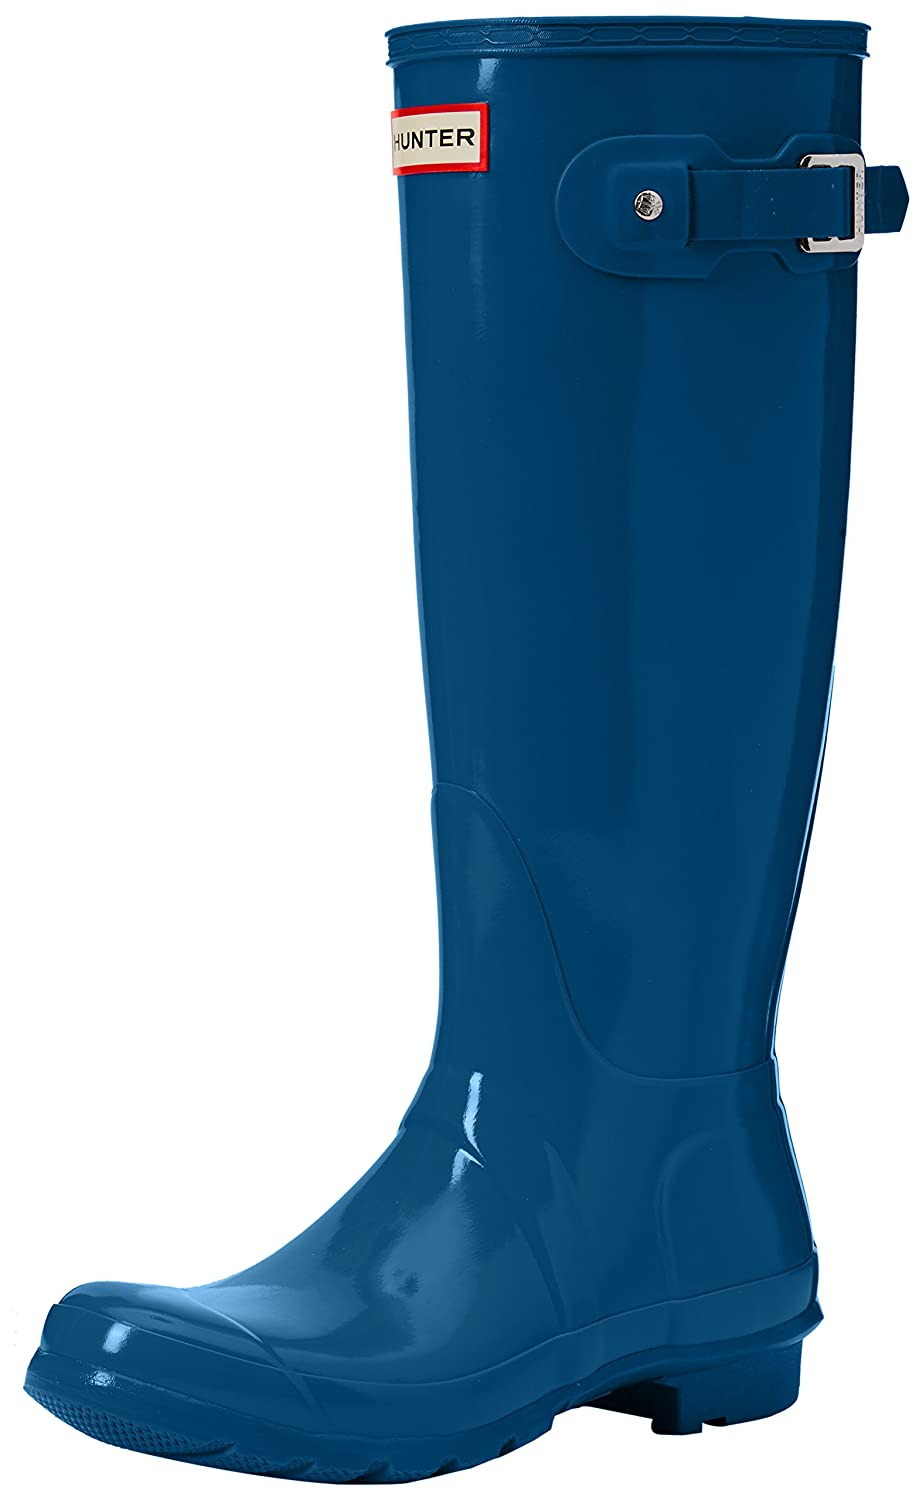 Hunter Women's Original Tall Rain Boot B01N7N9NEG 10 B(M) US|Ocean Blue